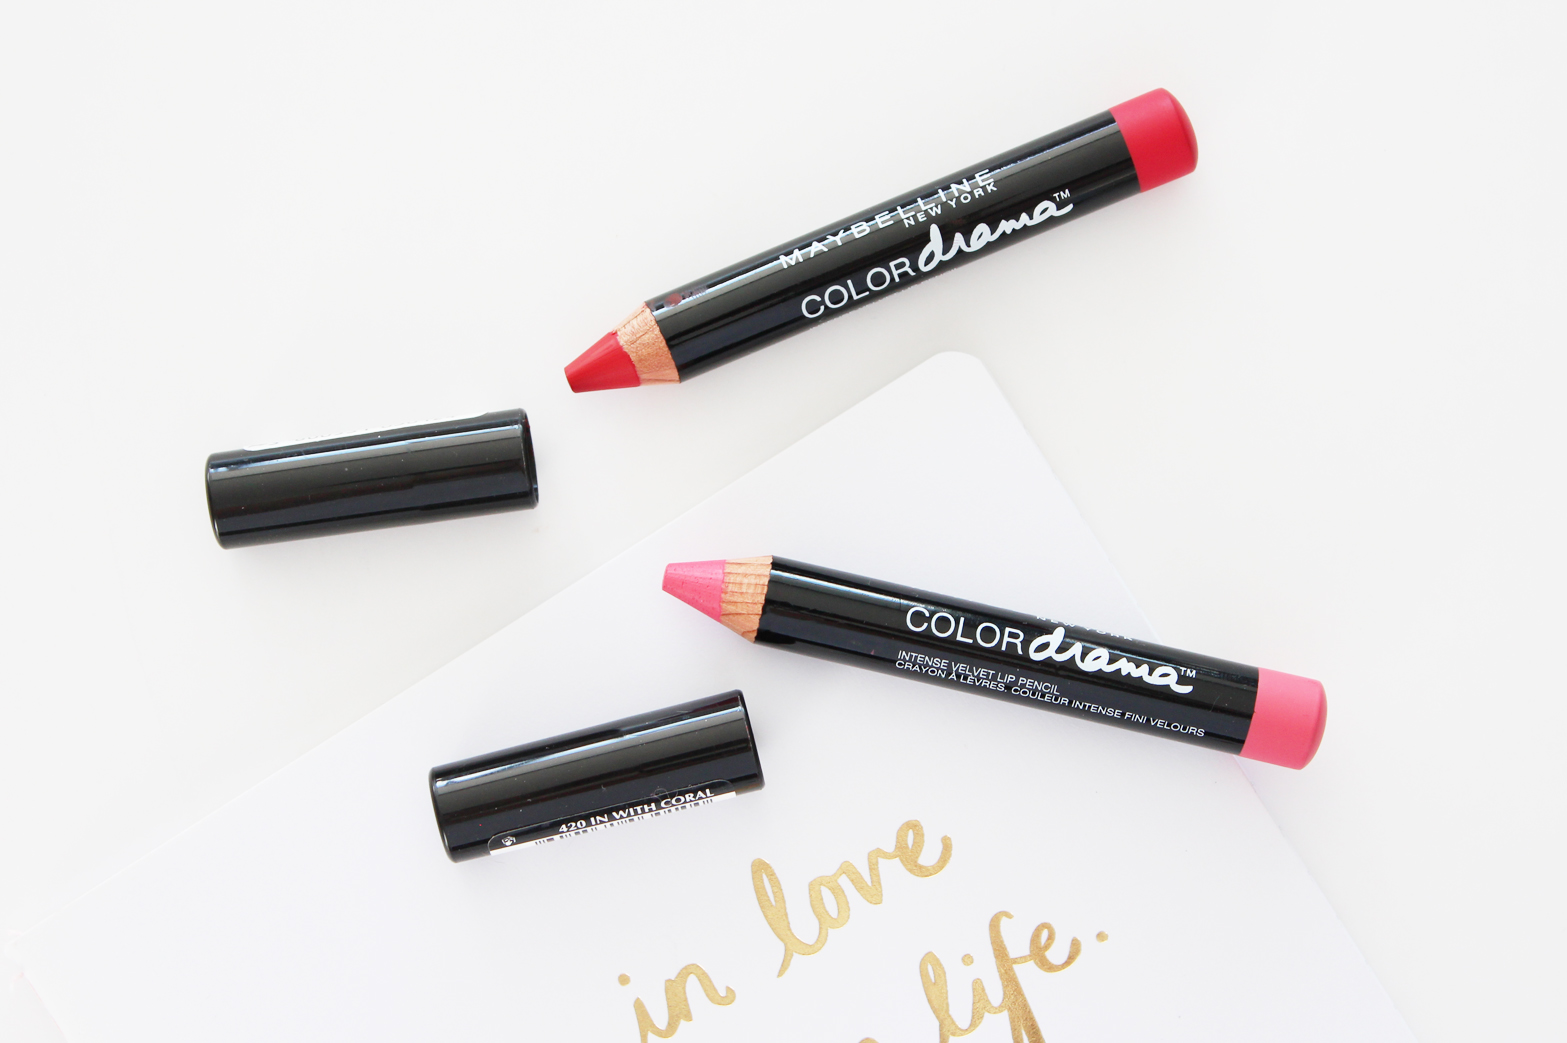 MAYBELLINE | Color Drama Intense Velvet Lip Pencils Review + Swatches - CassandraMyee